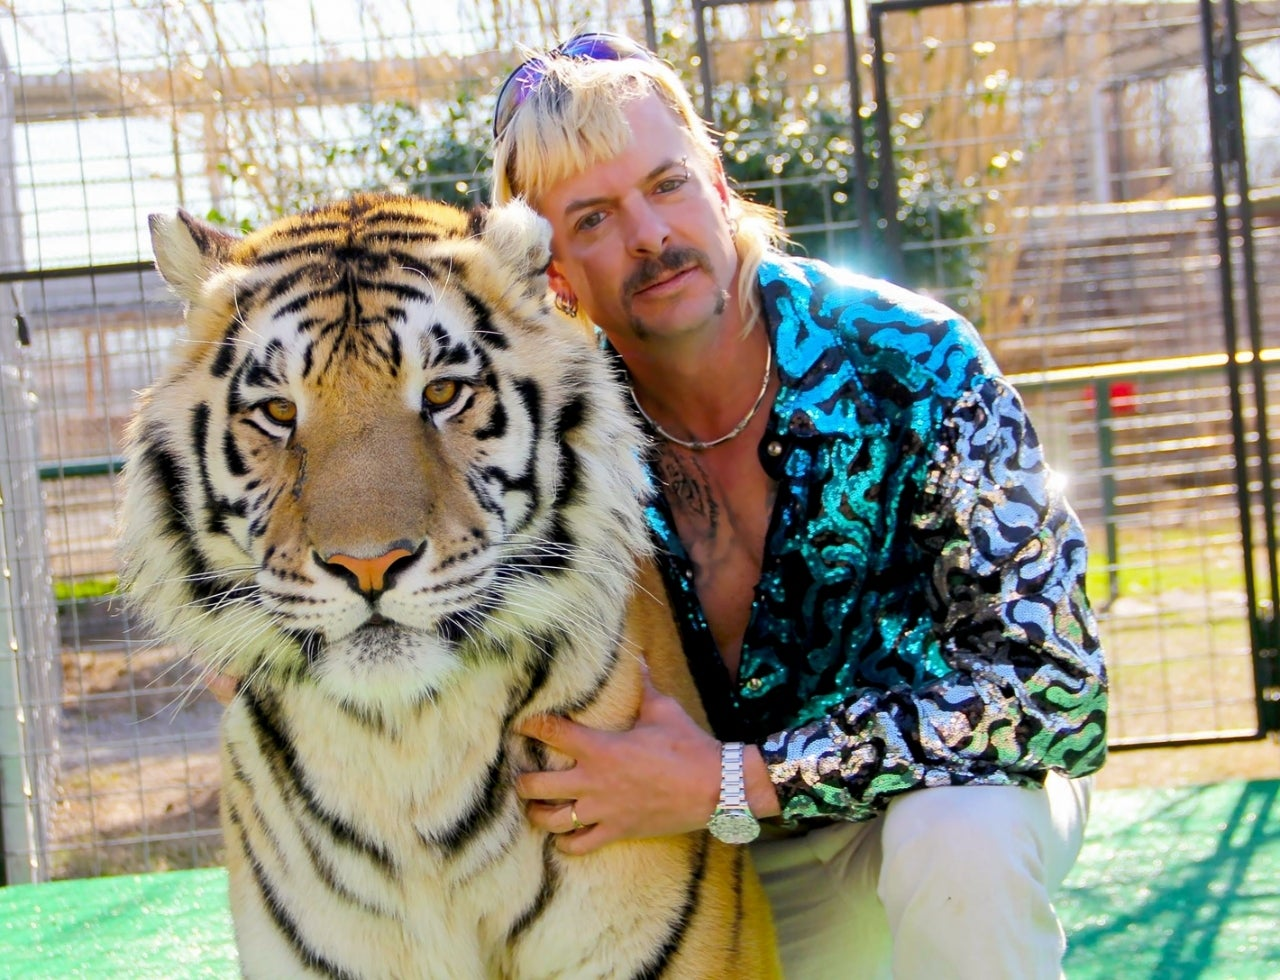 tiger-king-joe-exotic-netflix